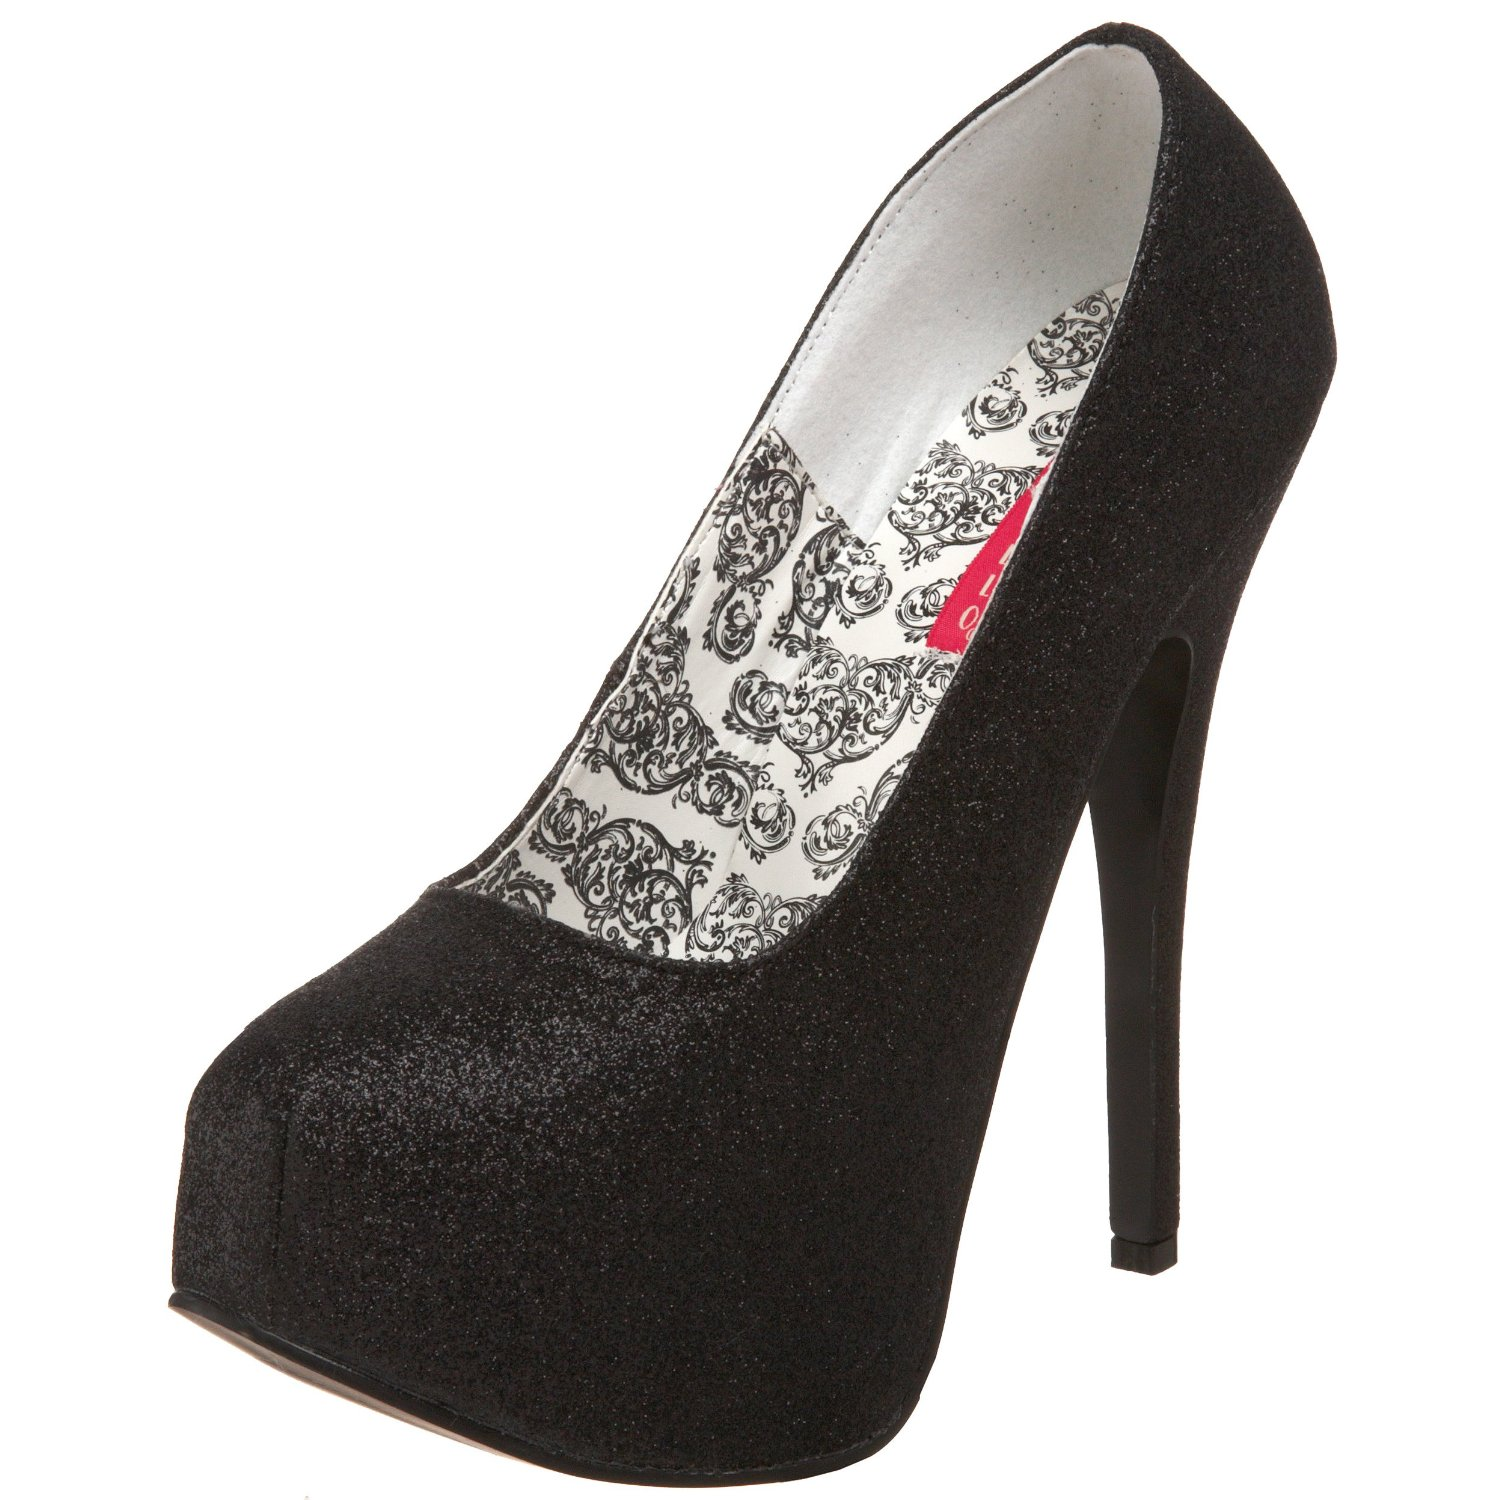 Shiekh Shoes Offers Cheap Shoes on Sale. Discount on Boots, Sneakers, High Heels and Wedges. Sale Up to 70% Off and Free Shipping at Shiekh Shoes.